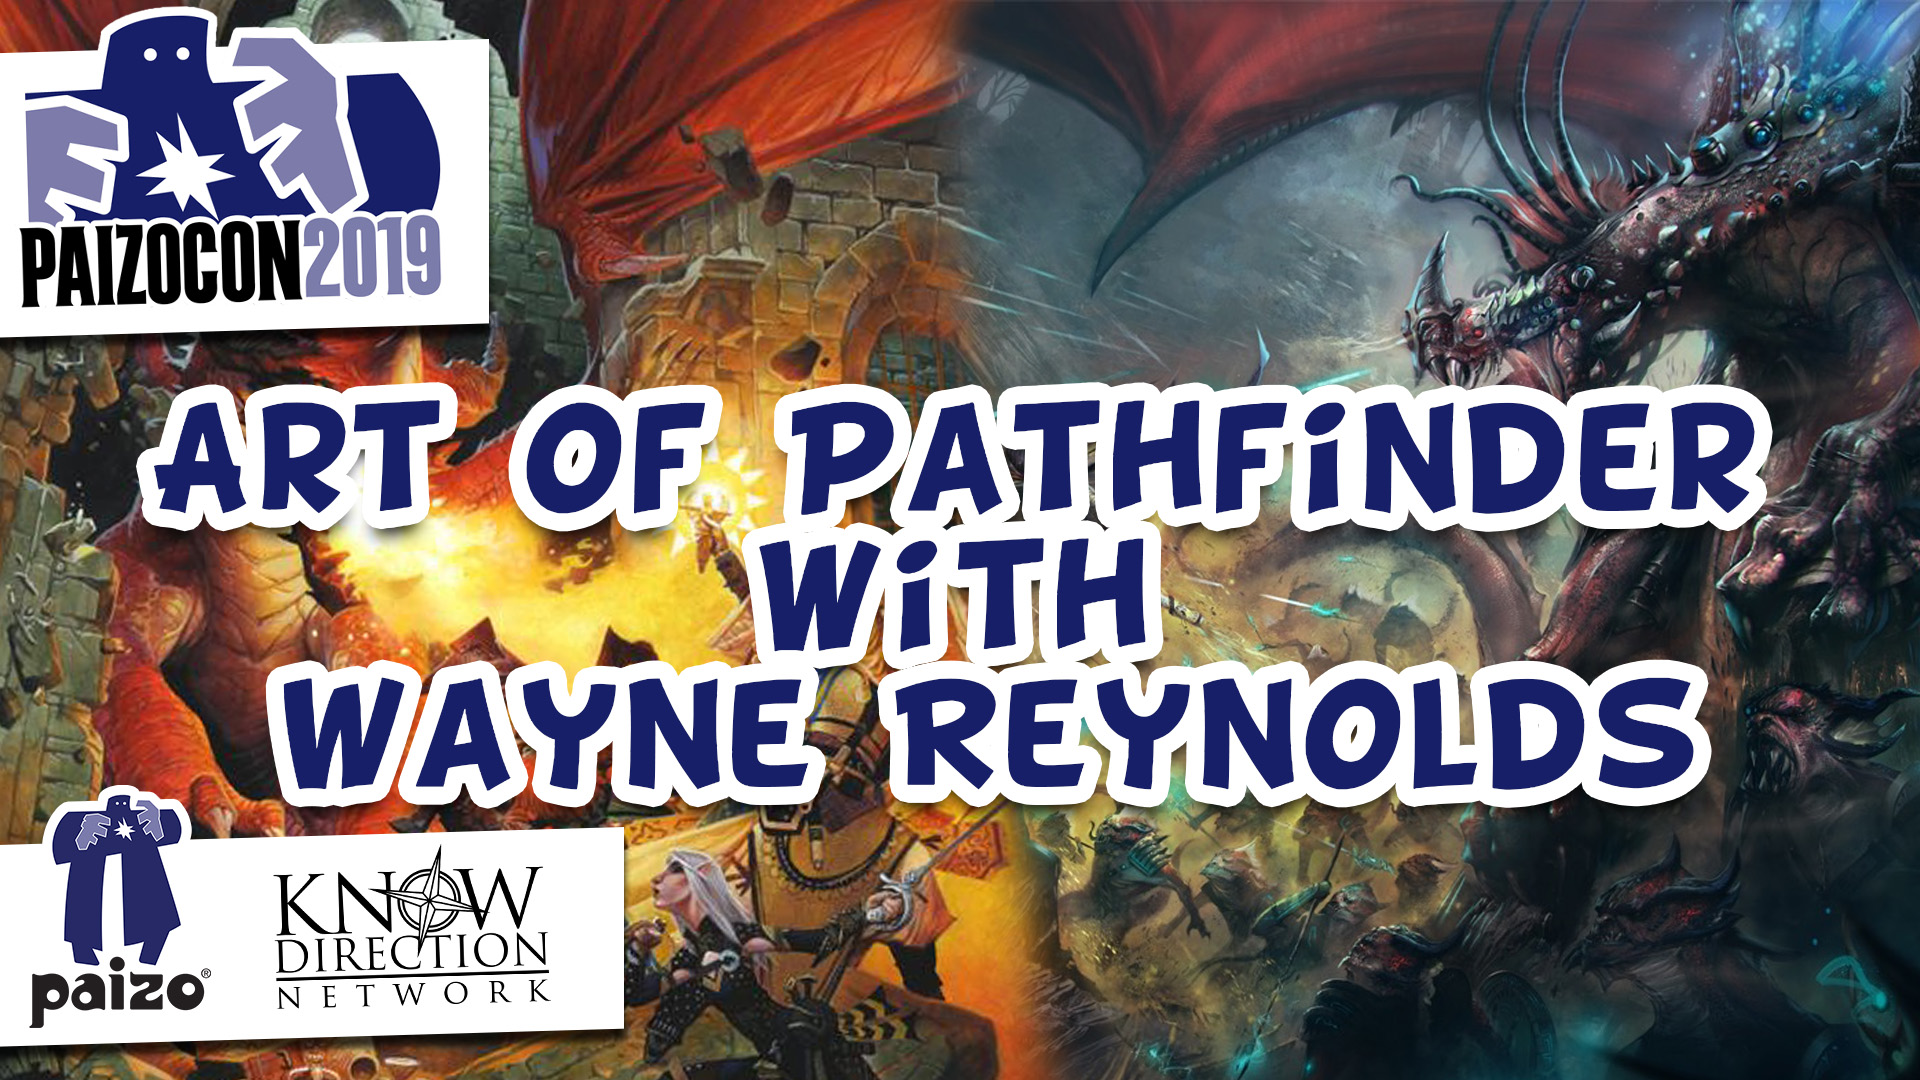 Art of Pathfinder with Wayne Reynolds